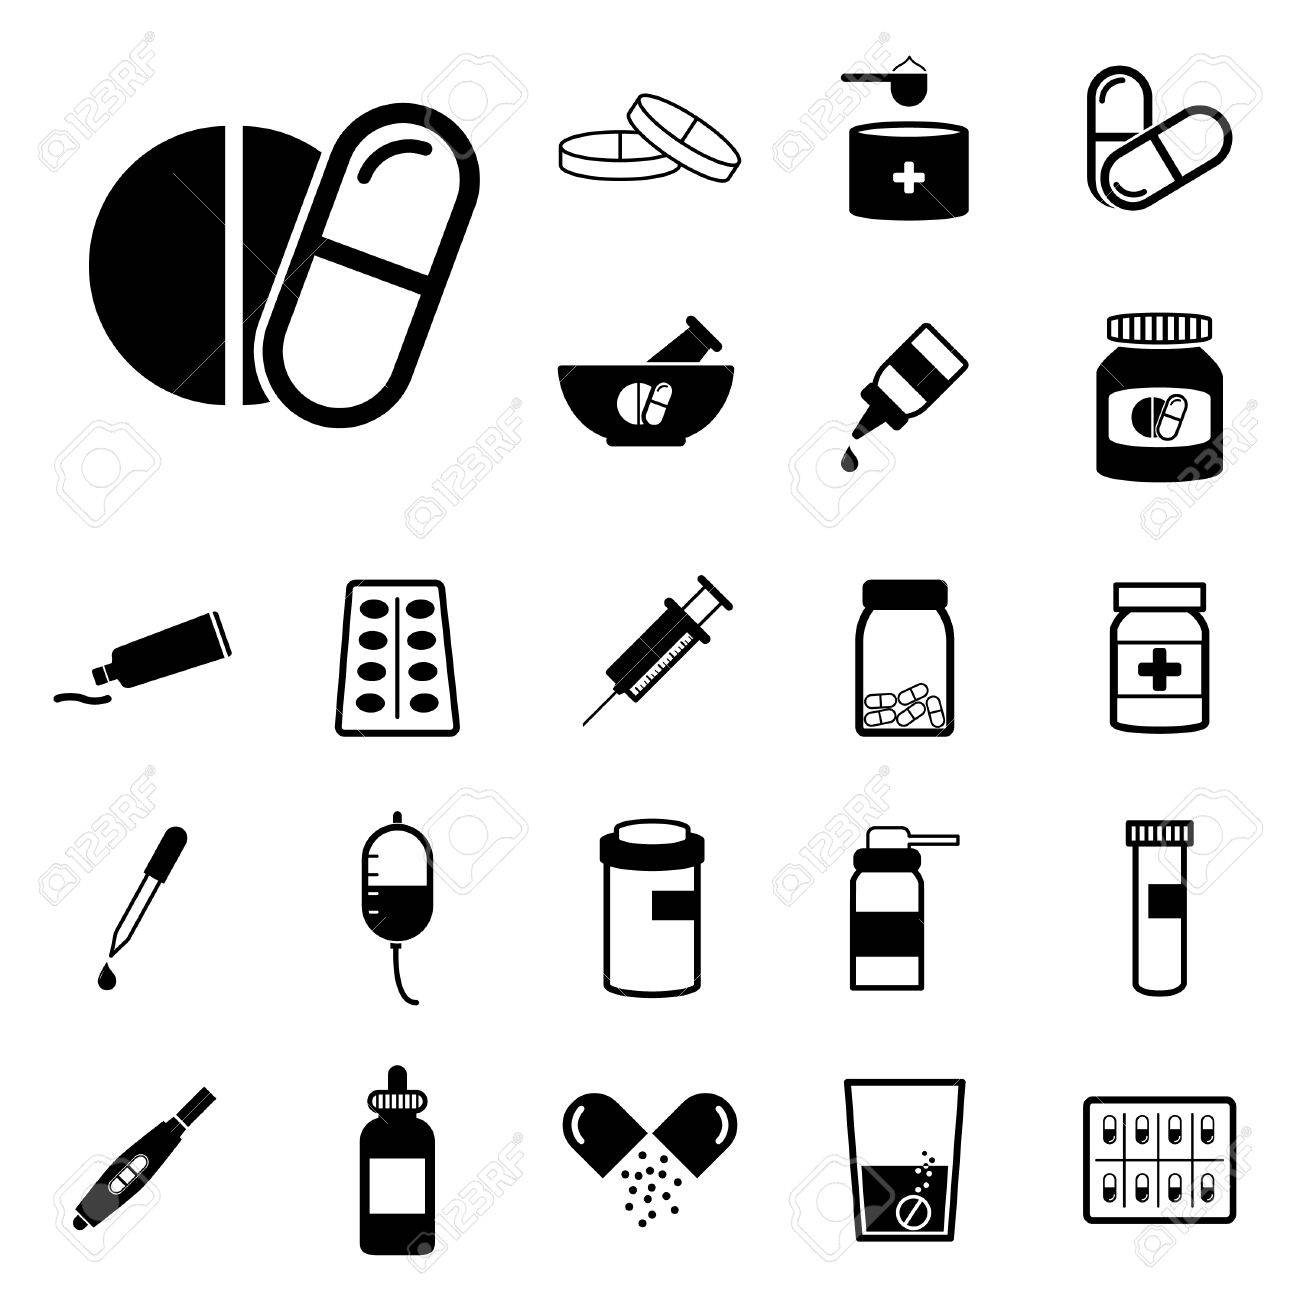 pharmacy and drug icons set vector illustration royalty free cliparts vectors and stock illustration image 76693865 pharmacy and drug icons set vector illustration